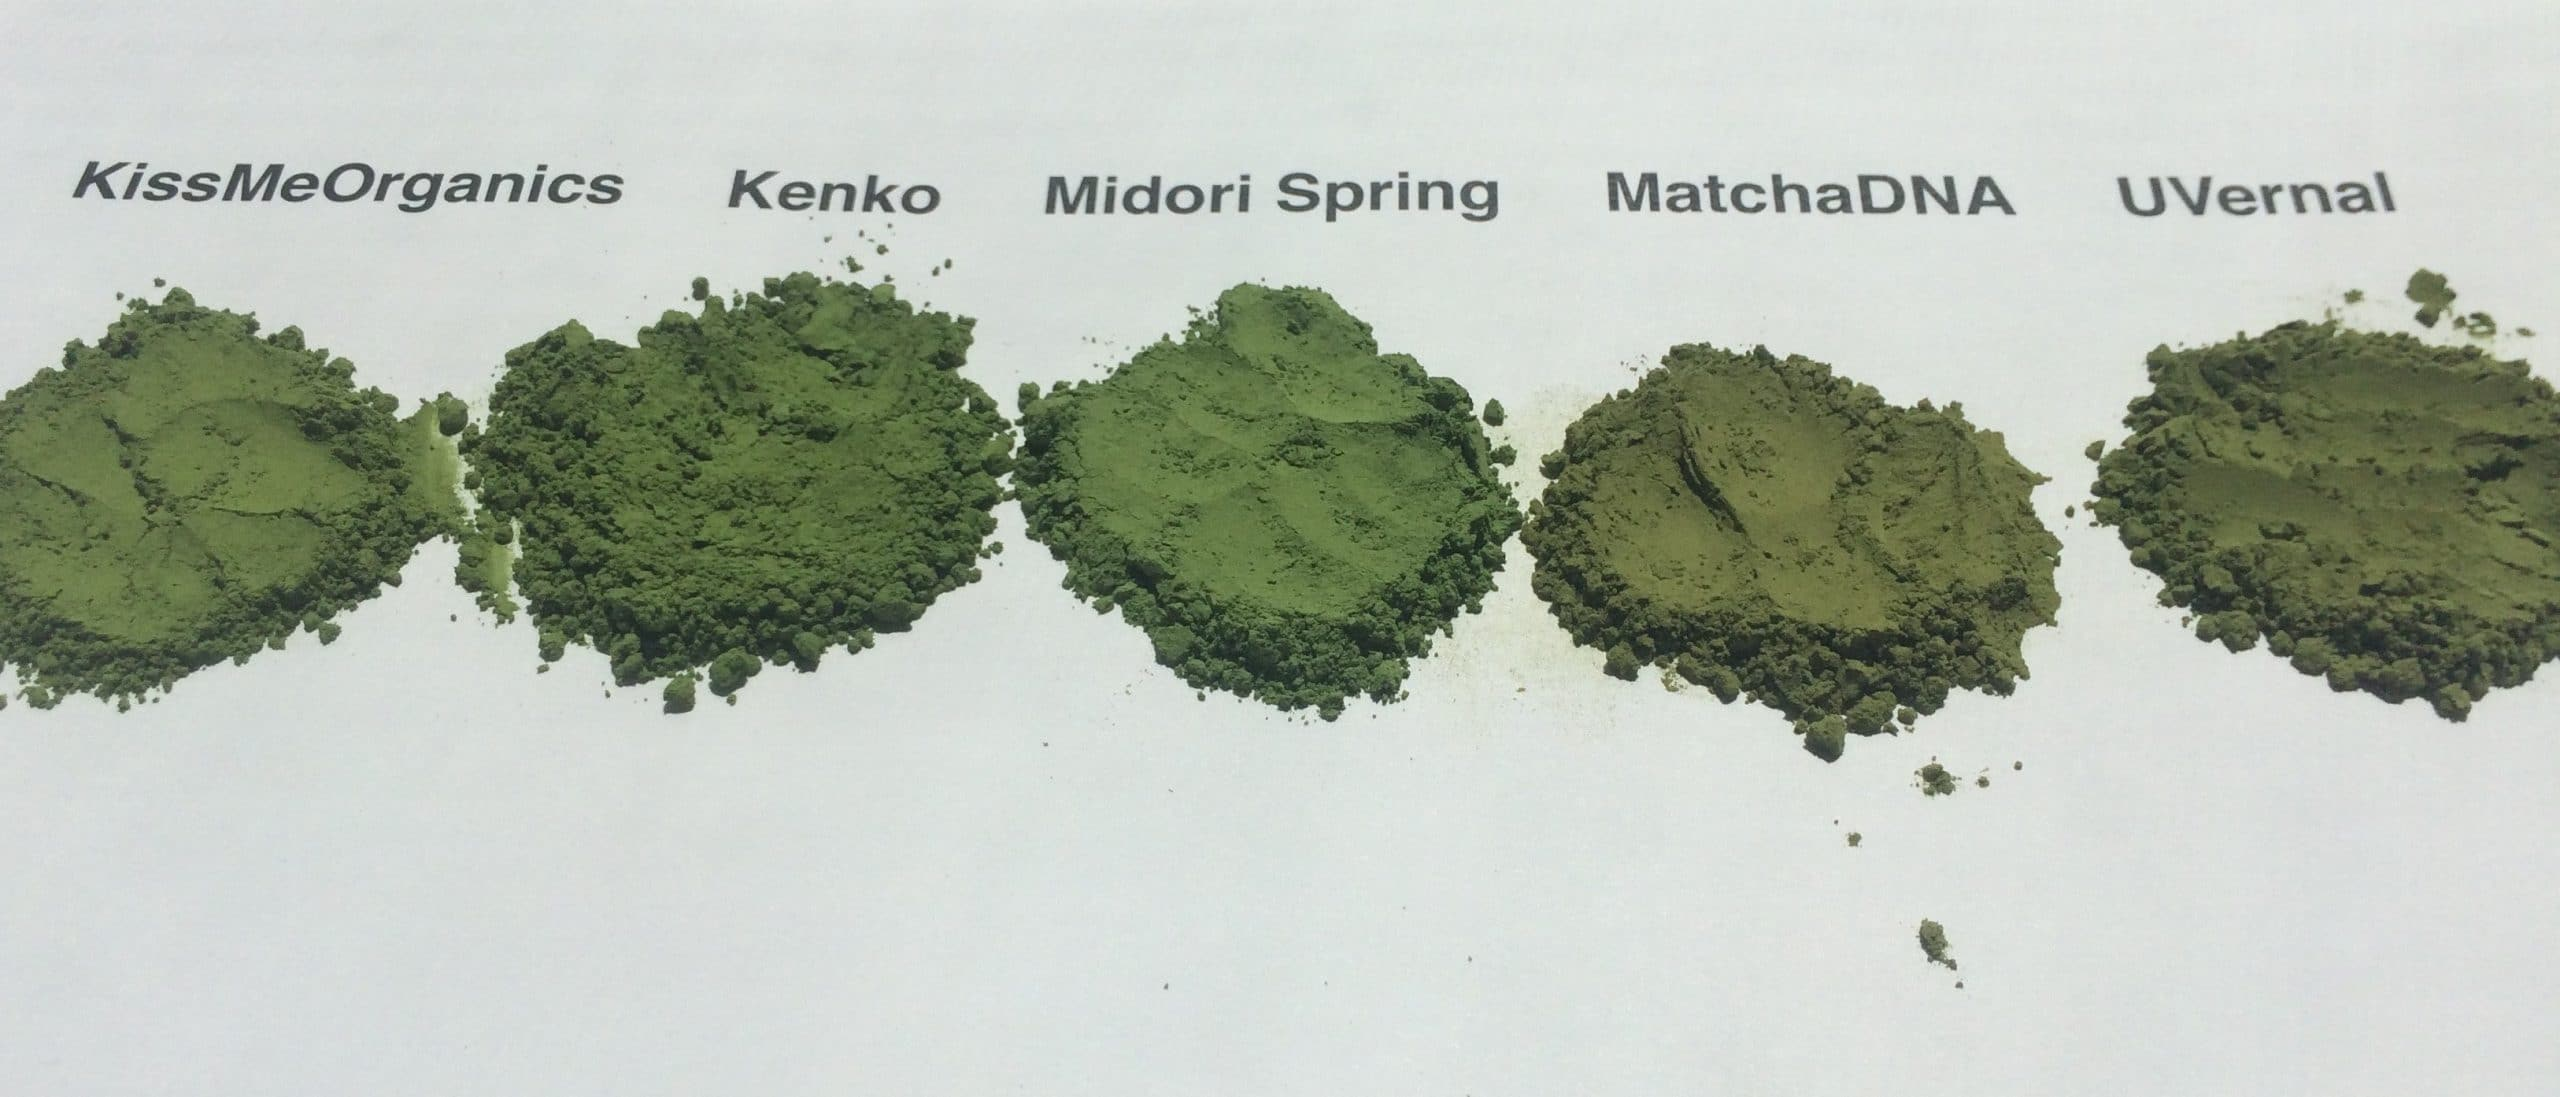 Uvernal Organic Ceremonial Matcha Review